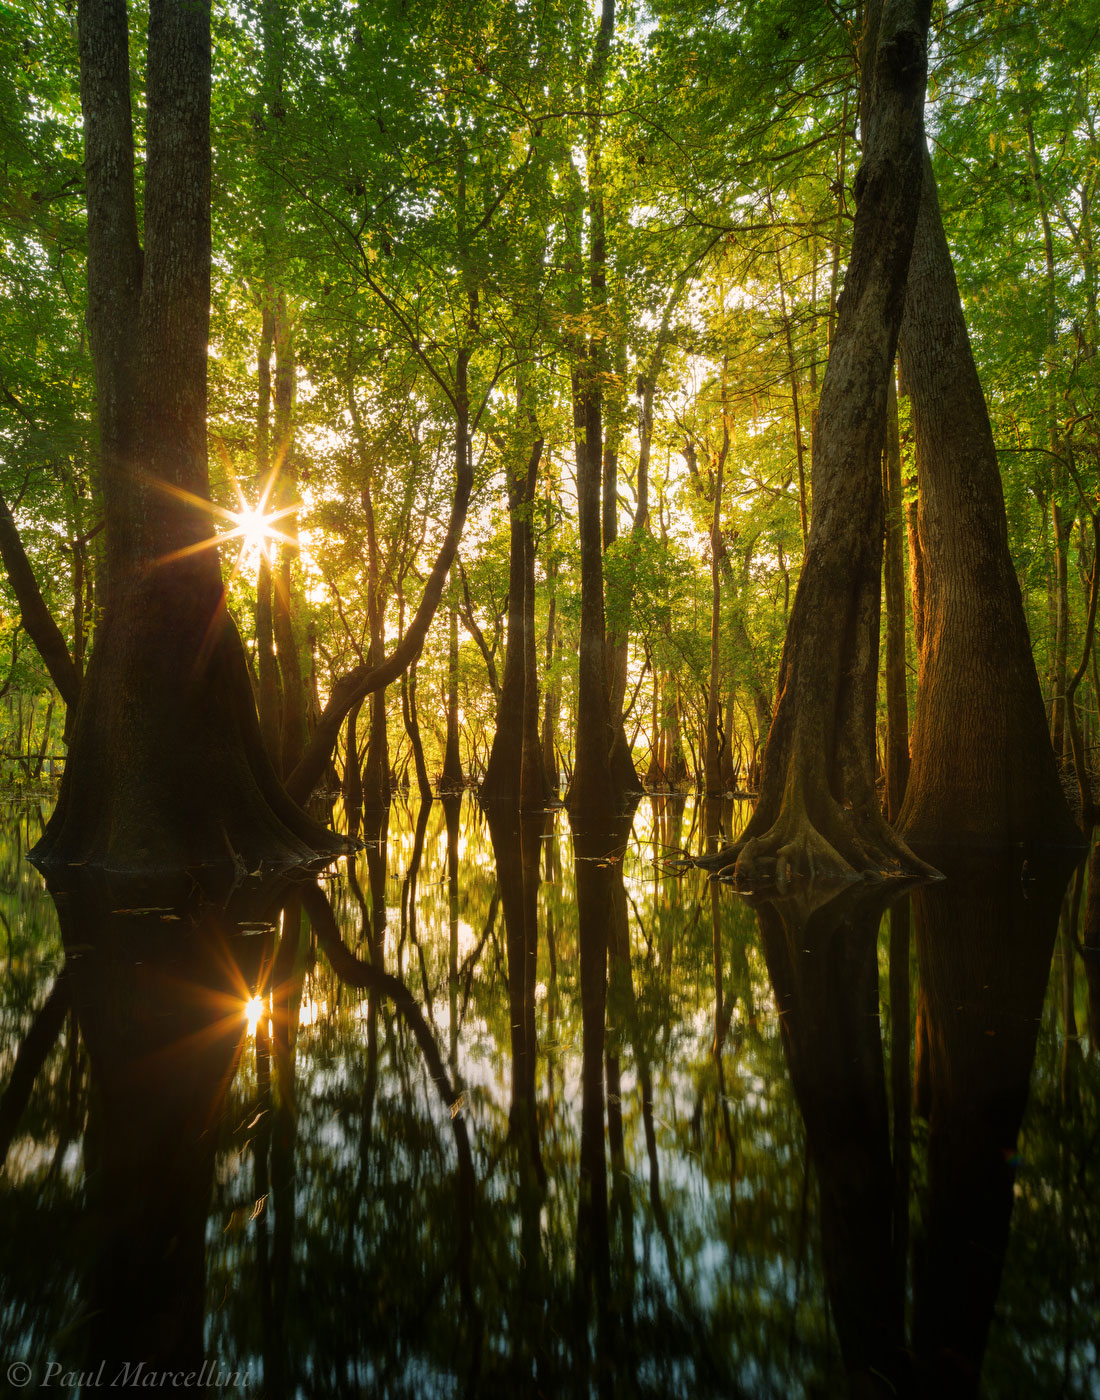 Suwannee River, Manatee Springs State Park, Florida, north florida, nature, photography, photo